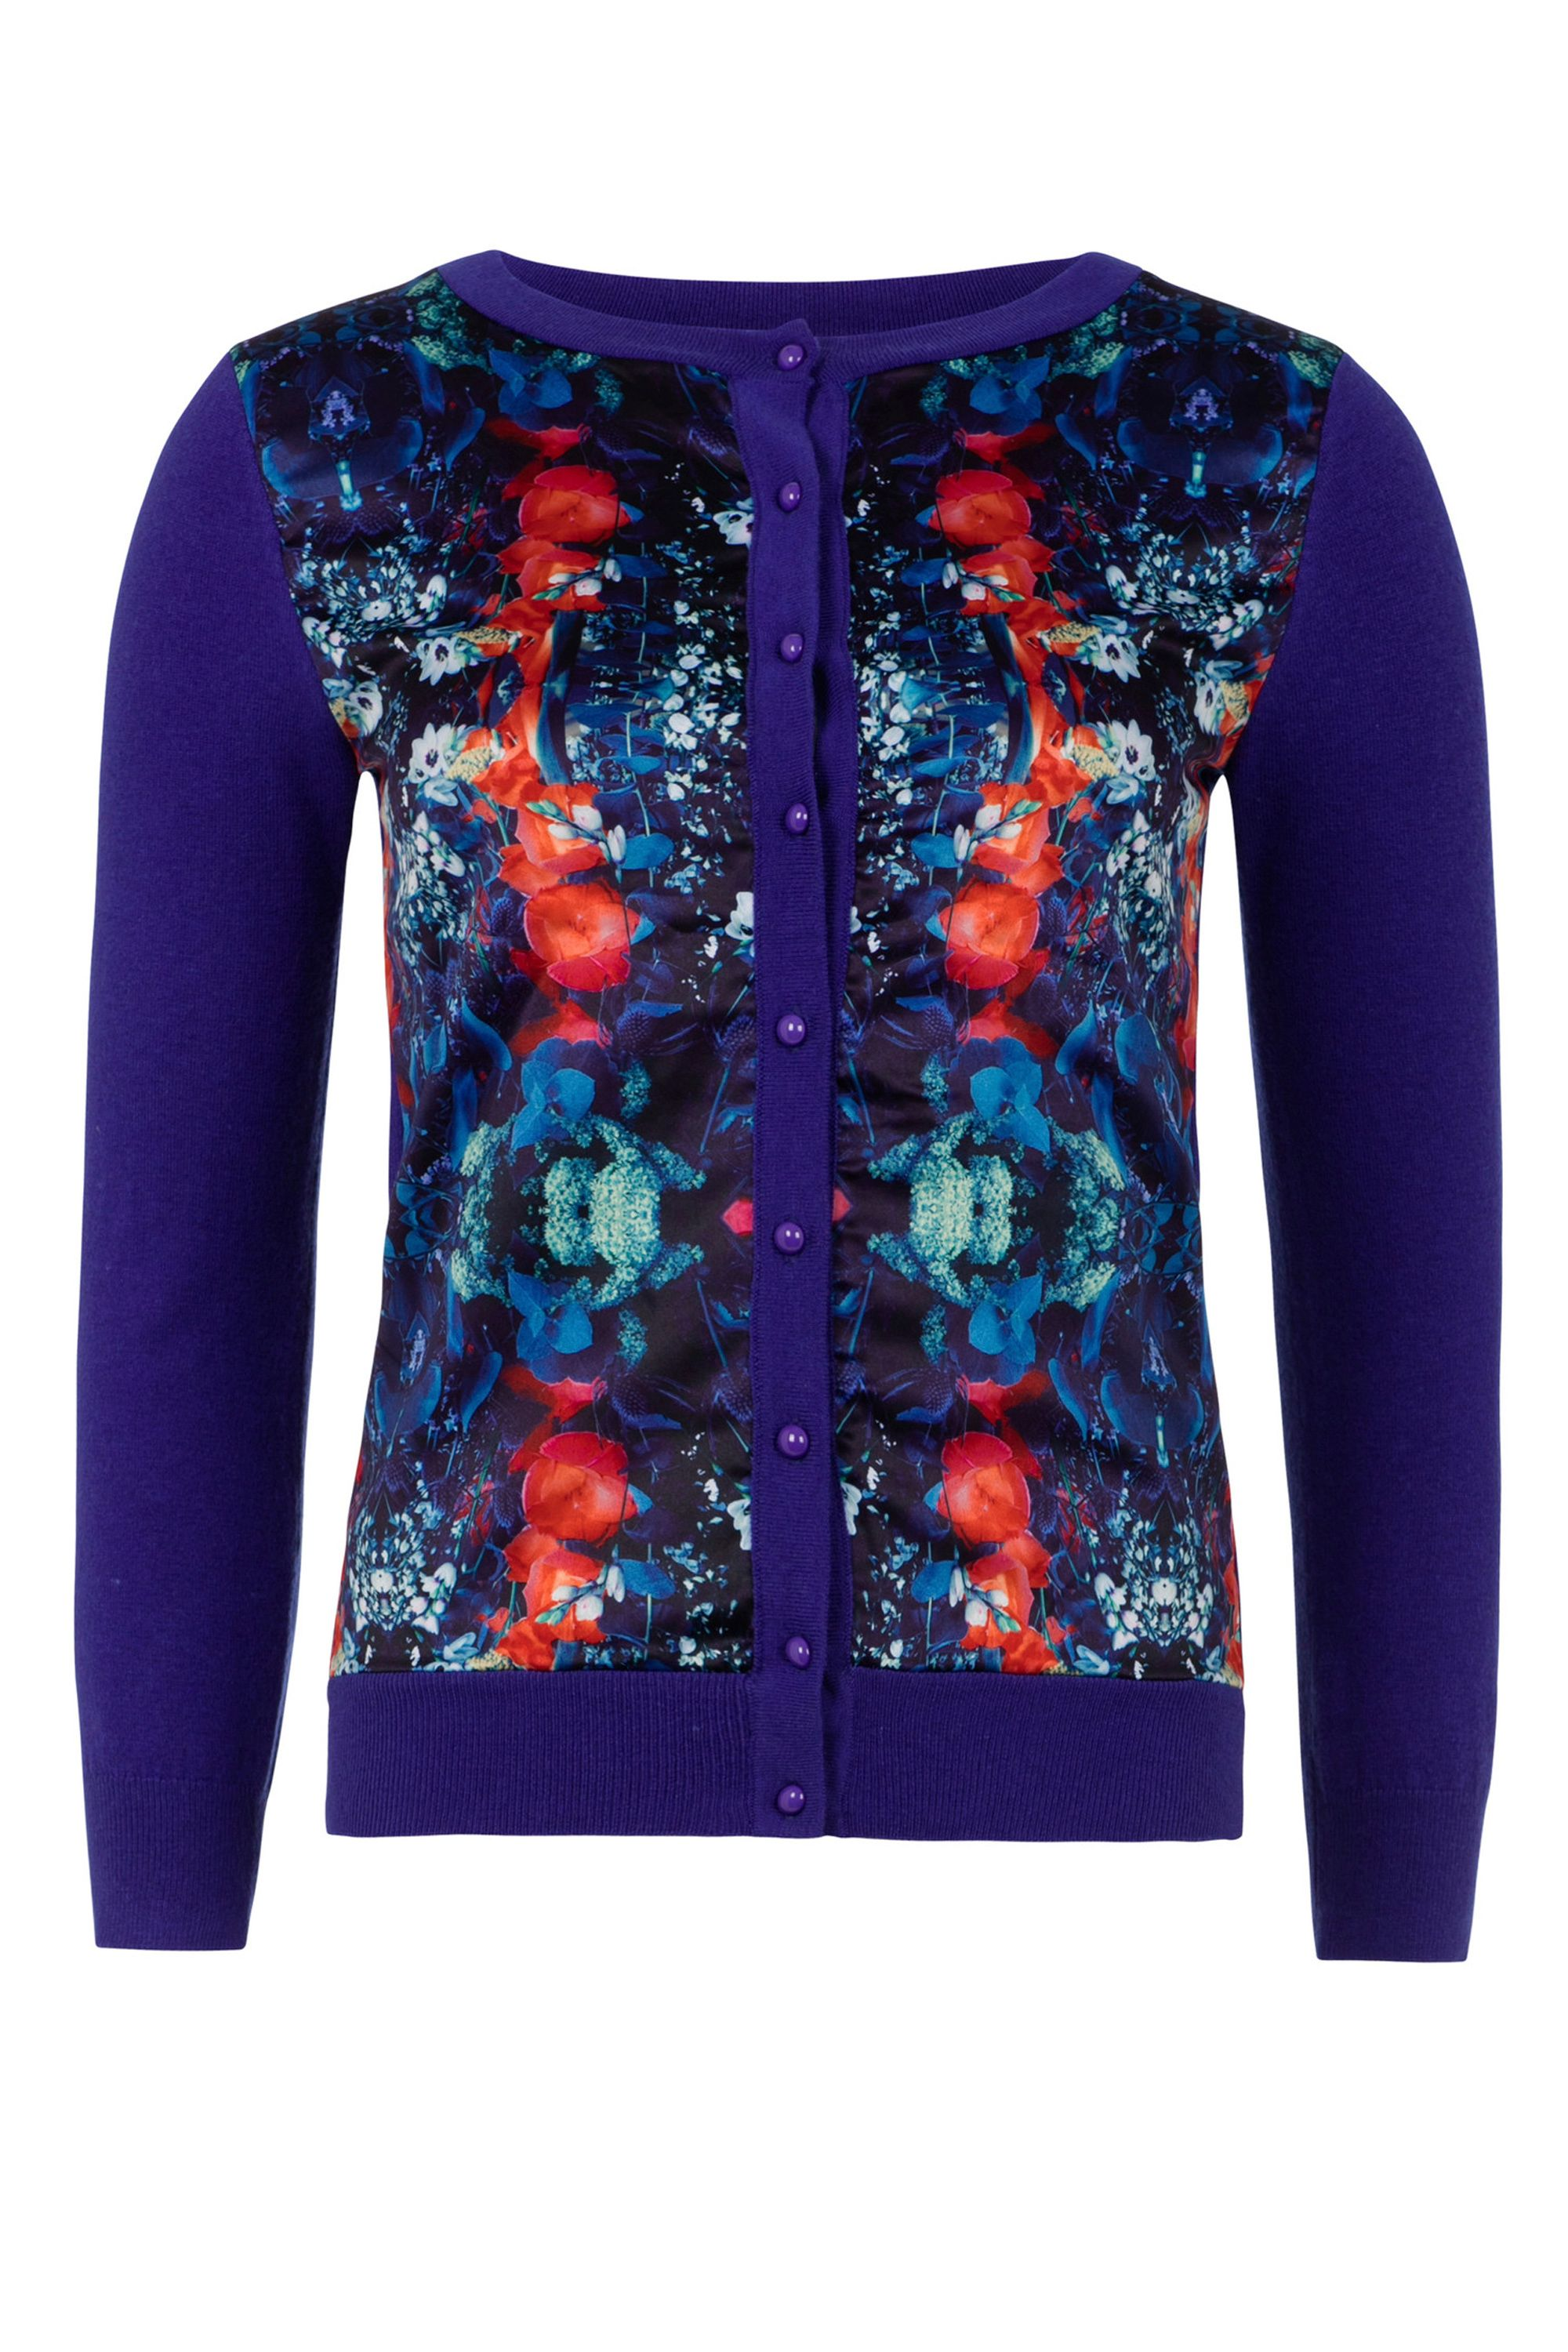 Wolf & Whistle Wolf & Whistle Mirror Floral Print Cardigan, Blue